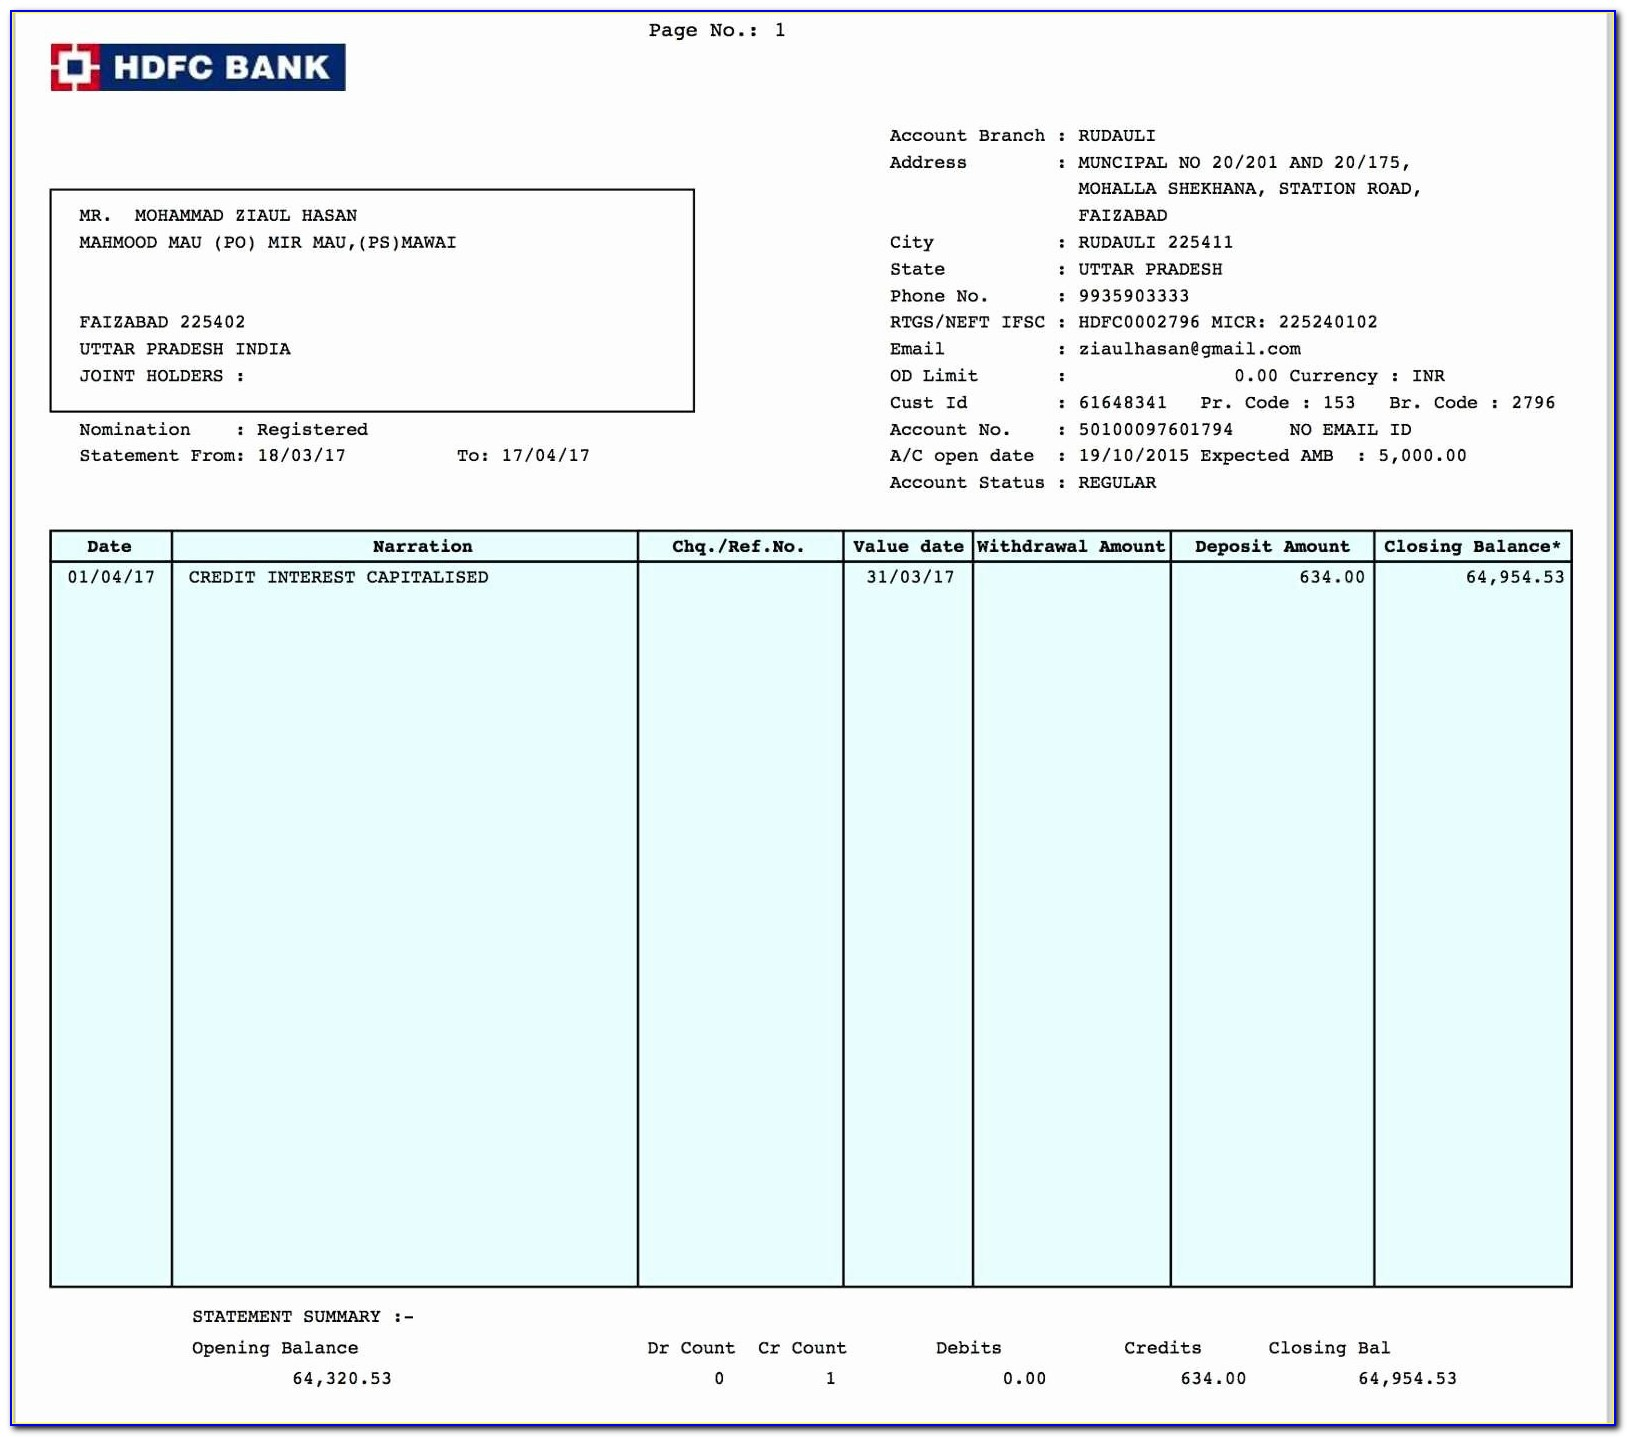 Bank Reconciliation Statement Software Free Download And Bank Statement Template Excel Unique Make A Bank Statement Template